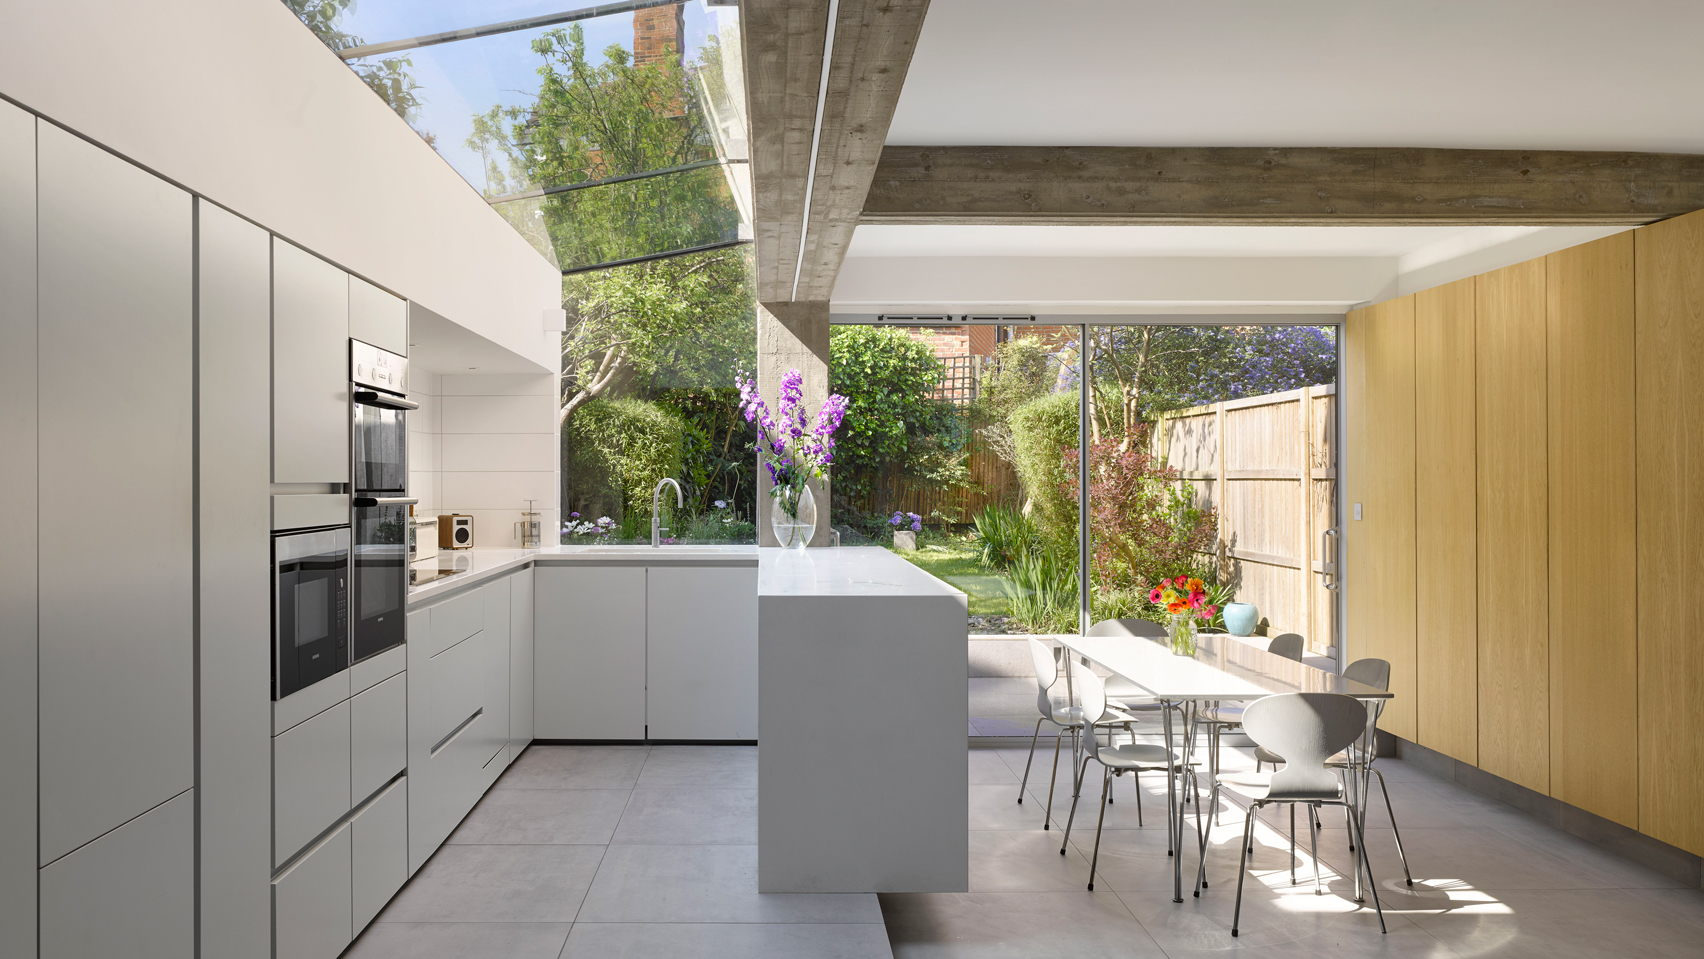 Architecture Design London london house extensions | dezeen